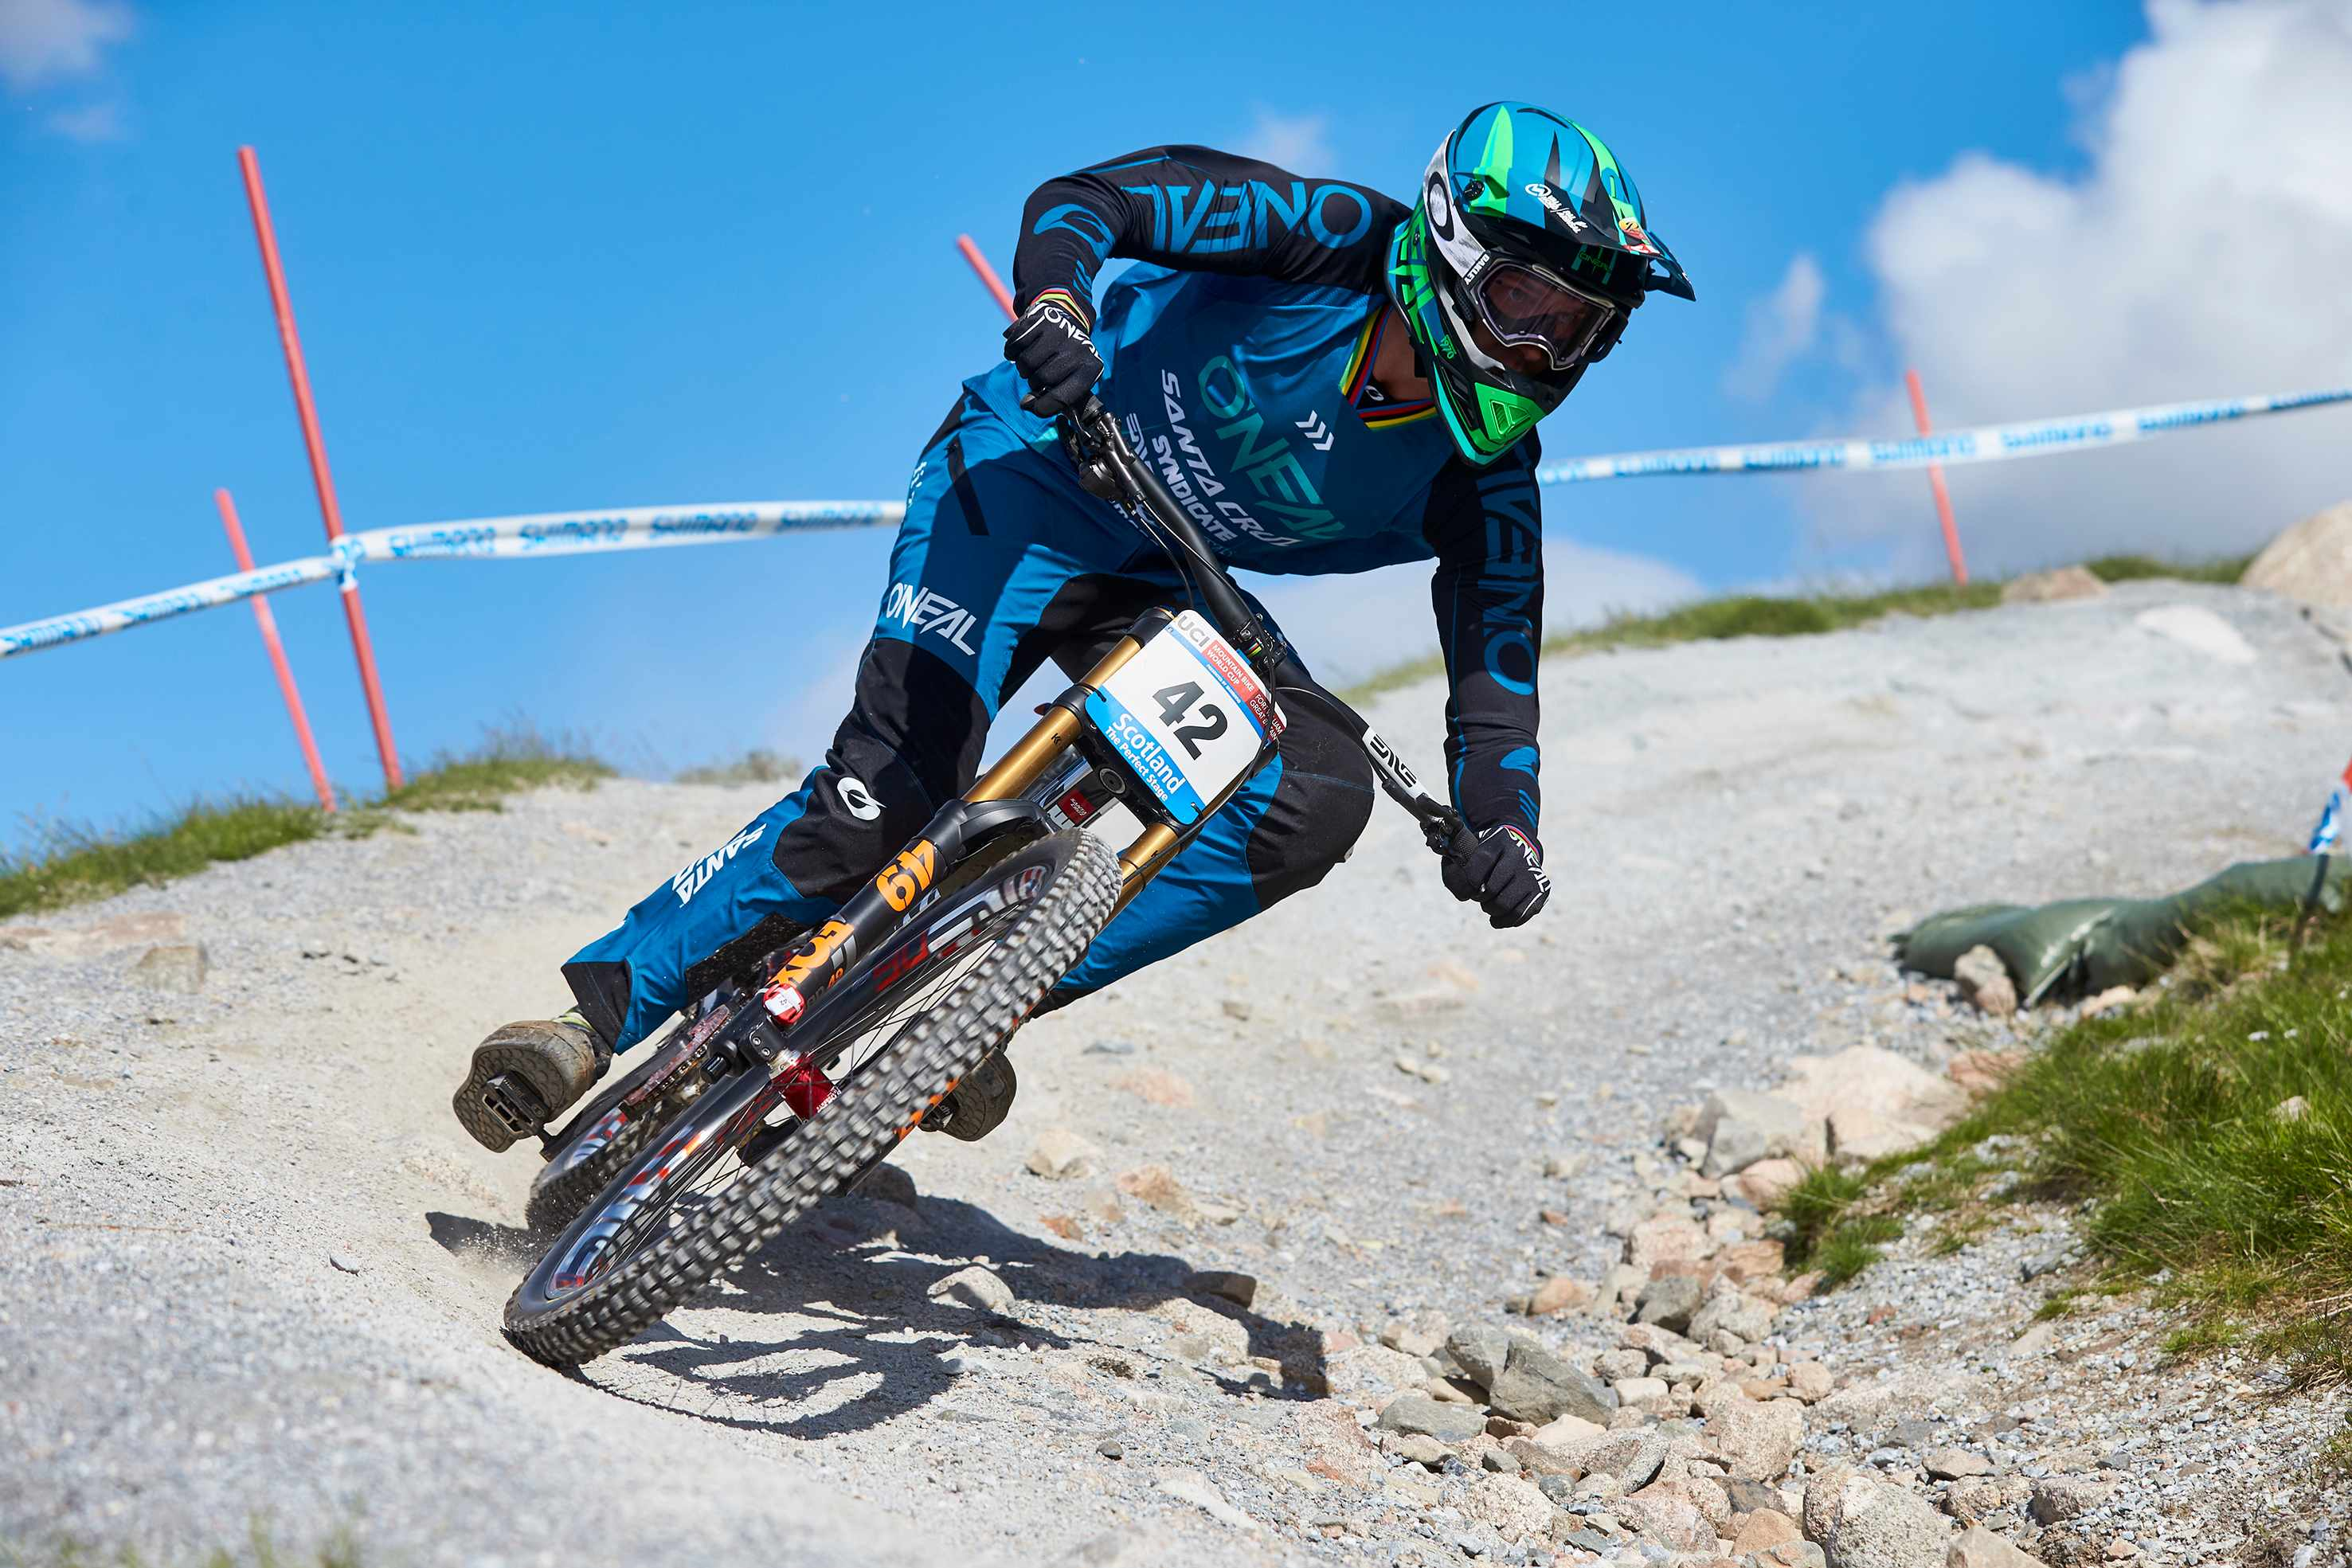 South African Greg Minnaar racing at Fort William